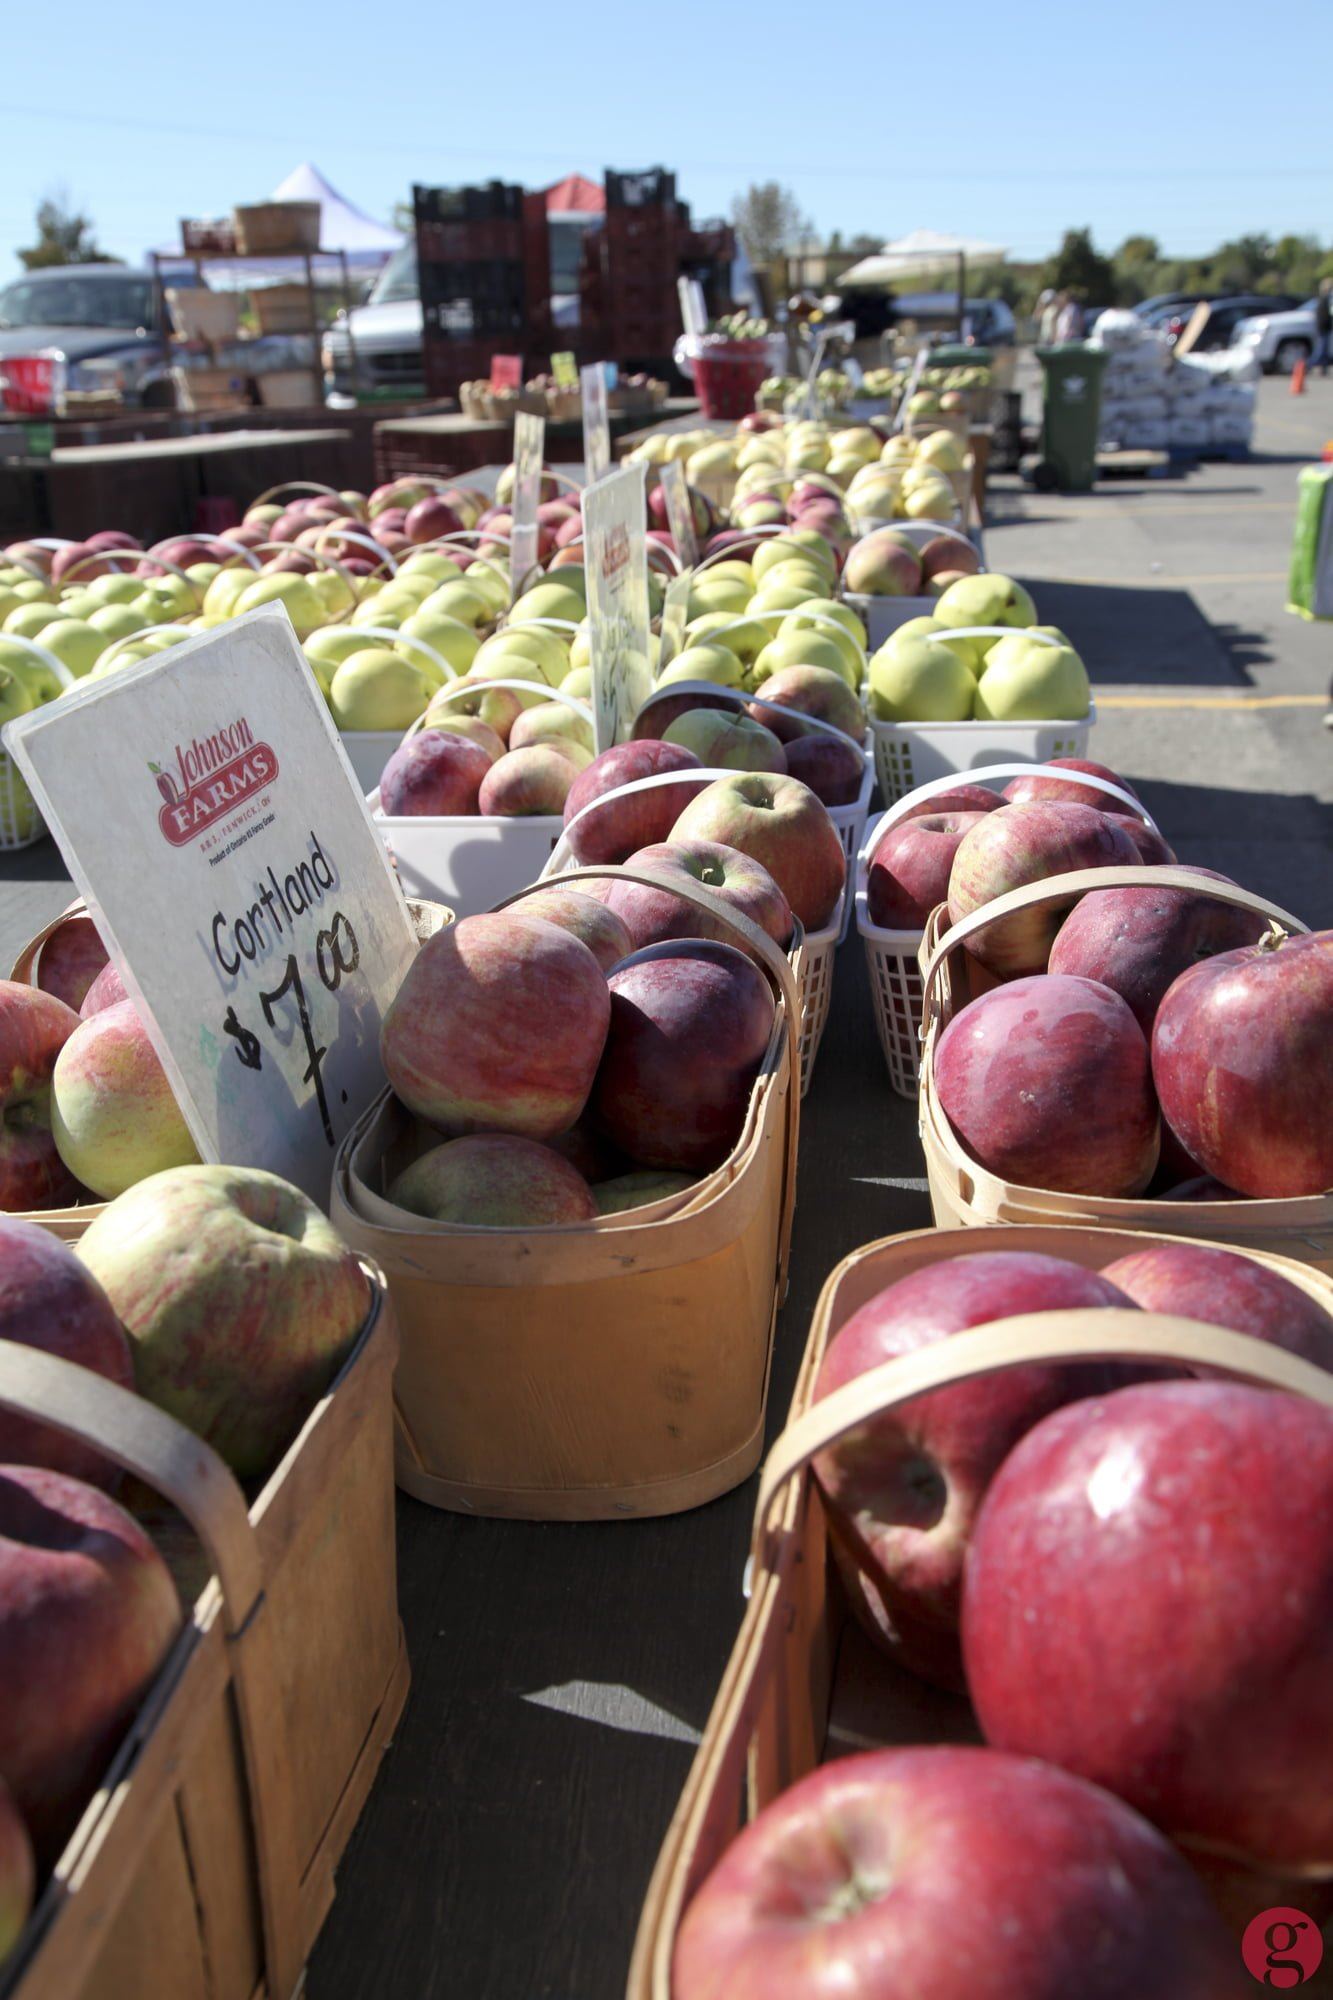 Apples for sale